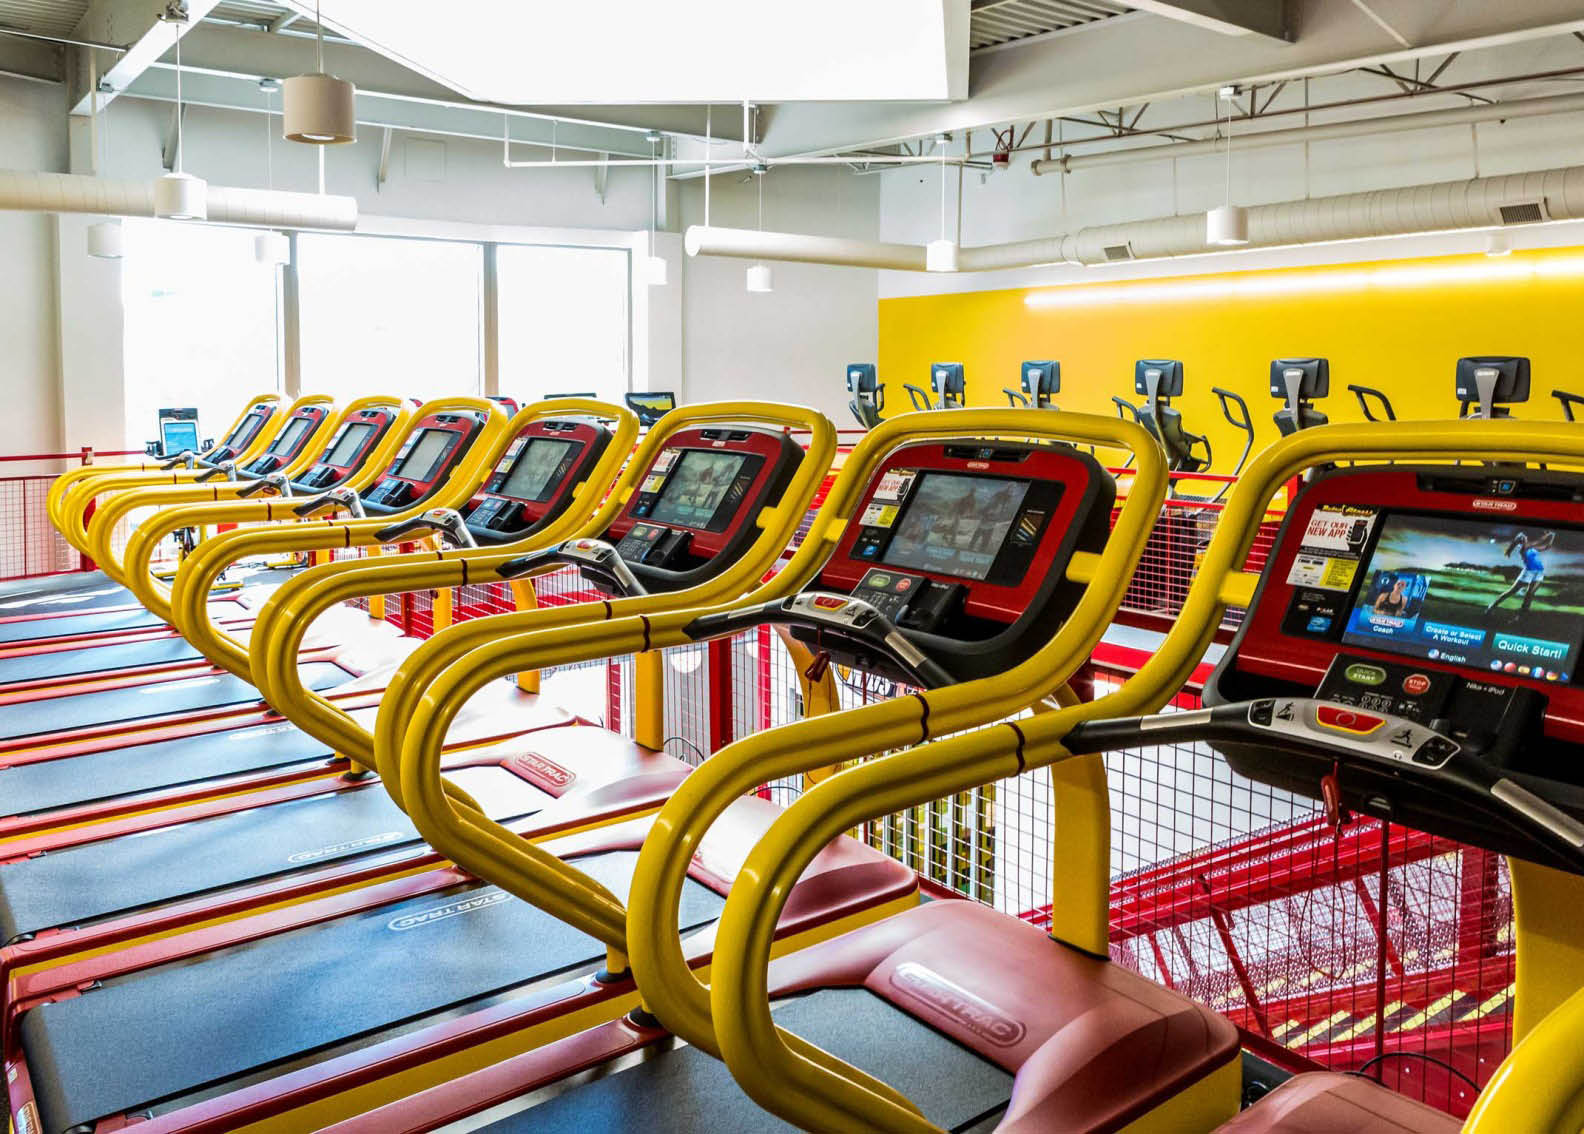 Gym Coupons - Belleville, NJ Fitness Coupons - Parsippany, NJ Fitness Coupons - Essex County Retro Fitness Coupons